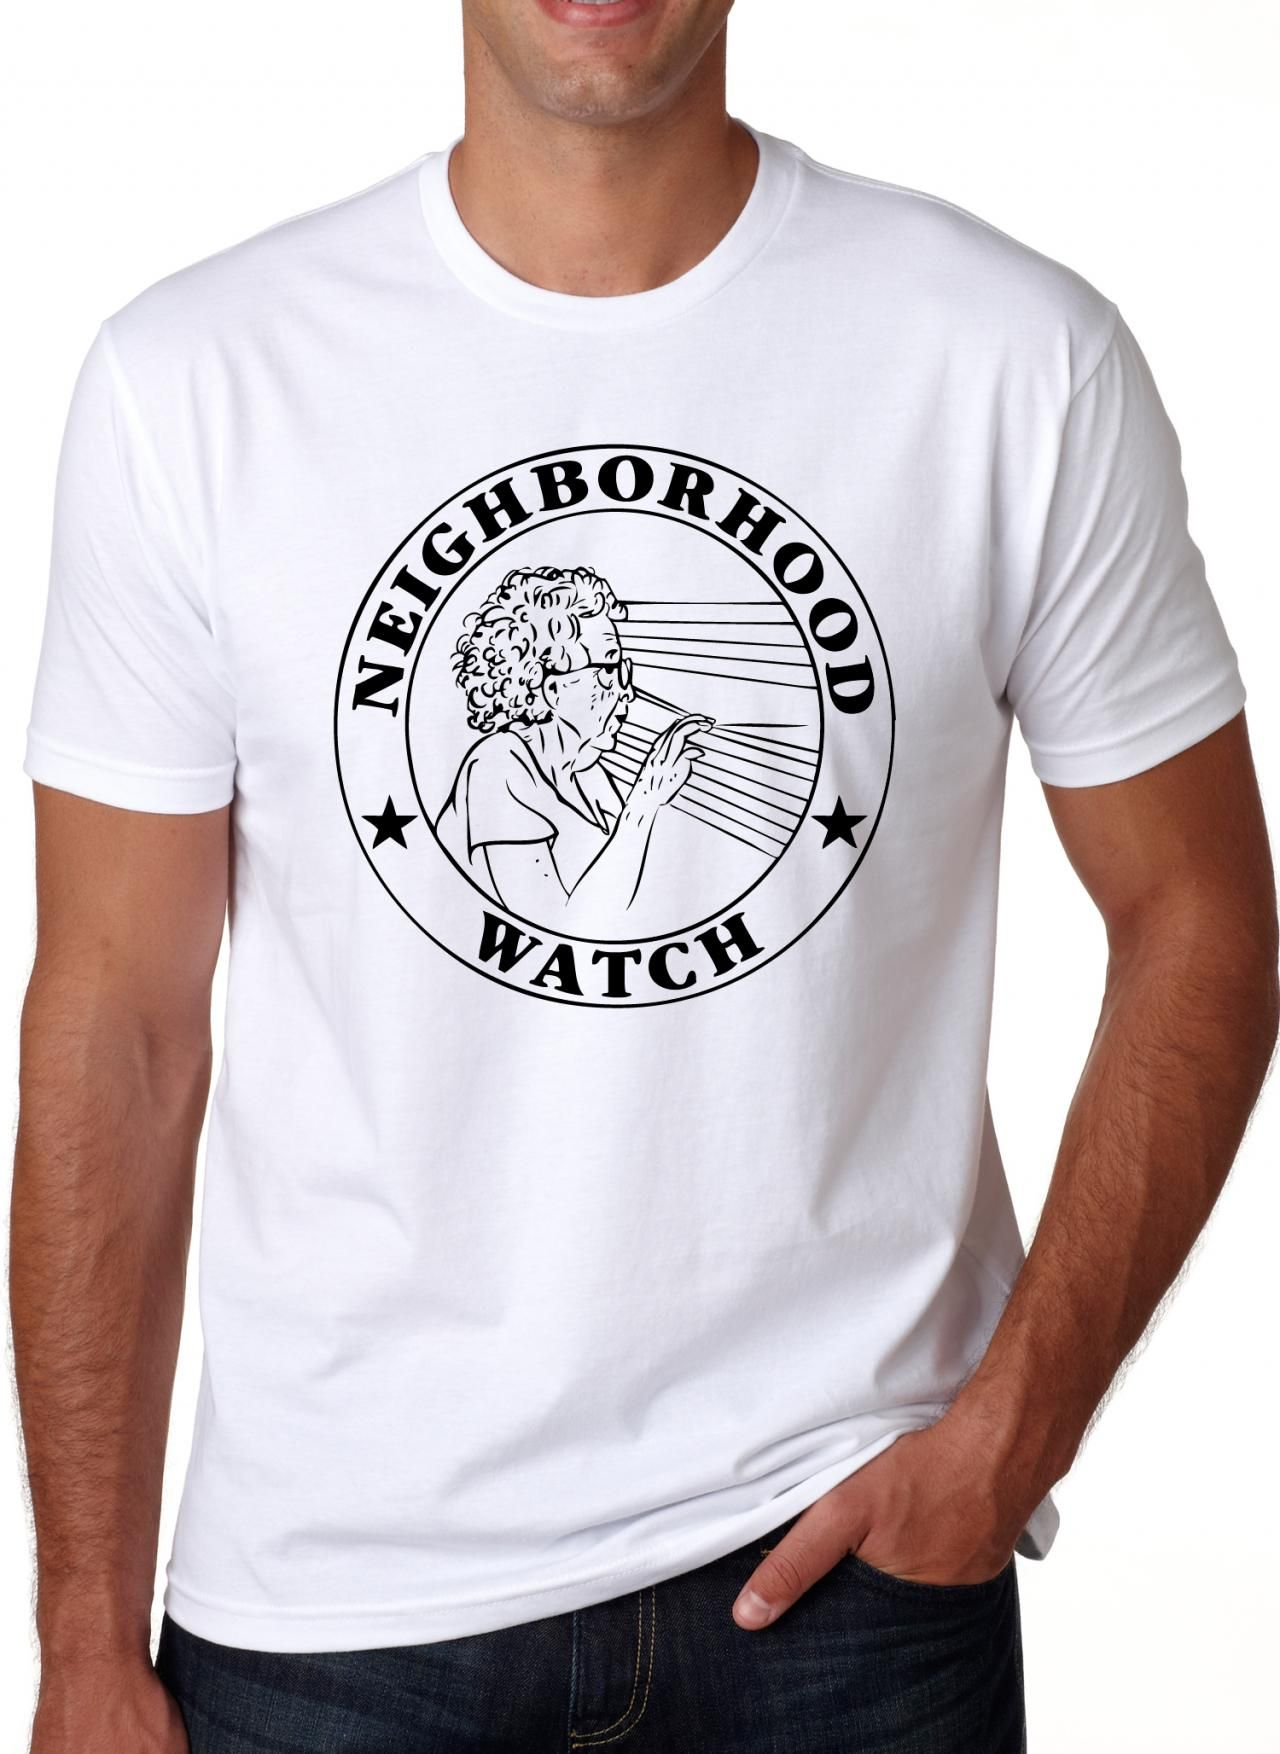 ddd01c4c691 Neighborhood Watch T Shirt Funny Shirt S-3XL